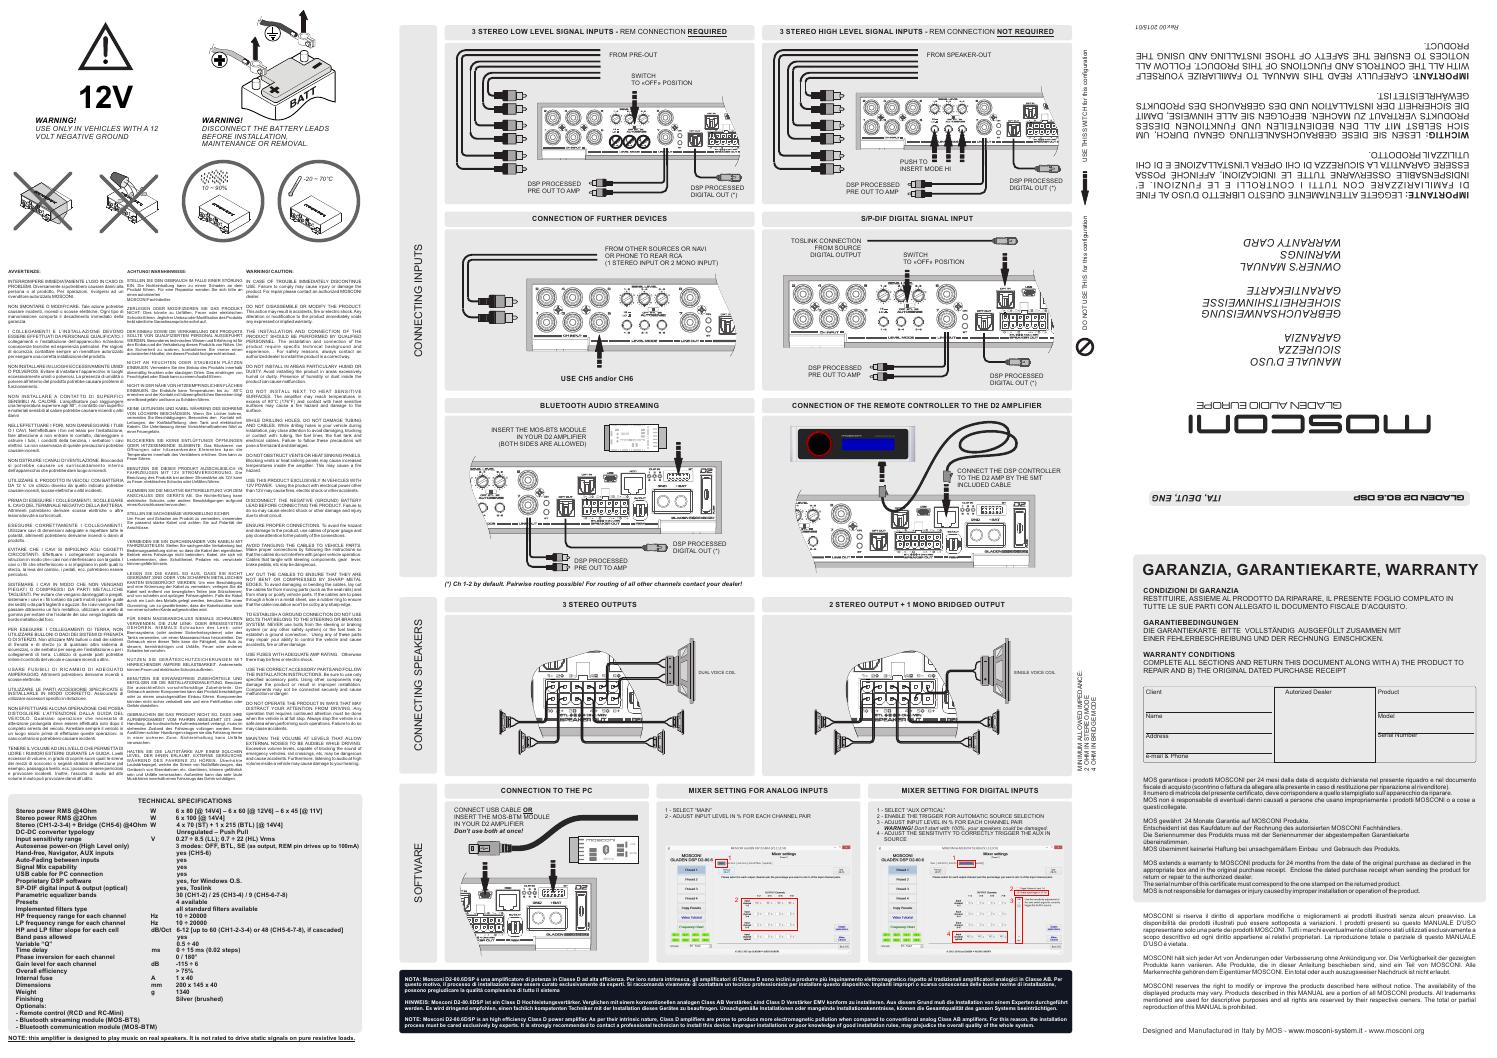 mosconi gladen user manual D2 80 6 dsp amplifier car audio by ...